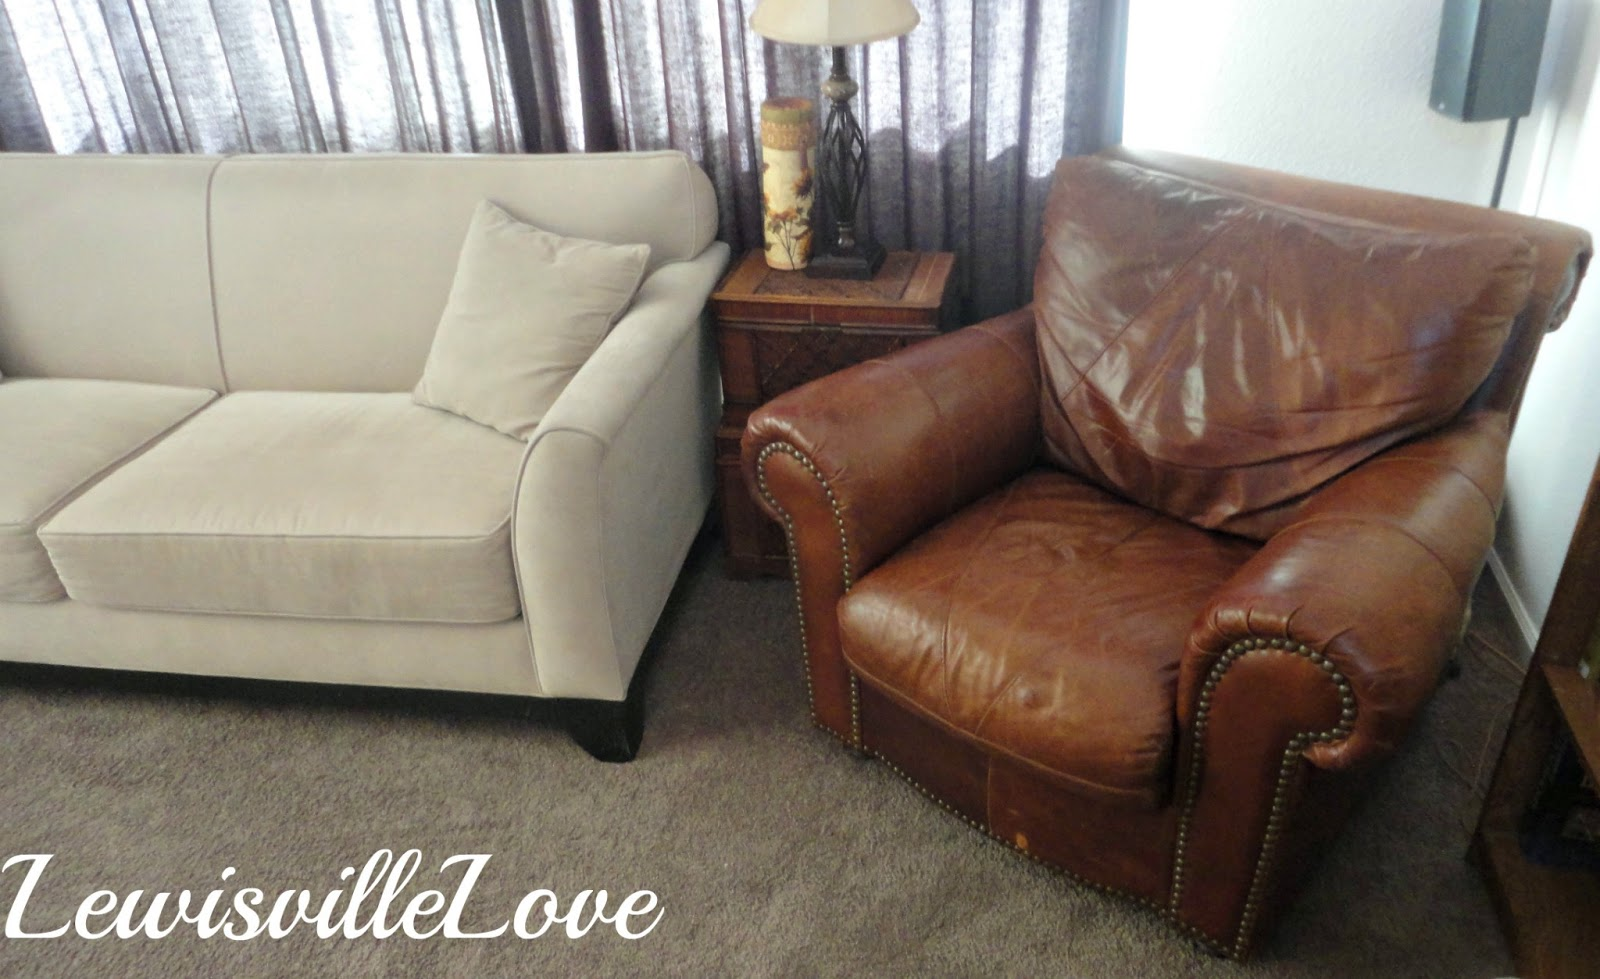 Lewisville Love Buying and Selling on Craigslist